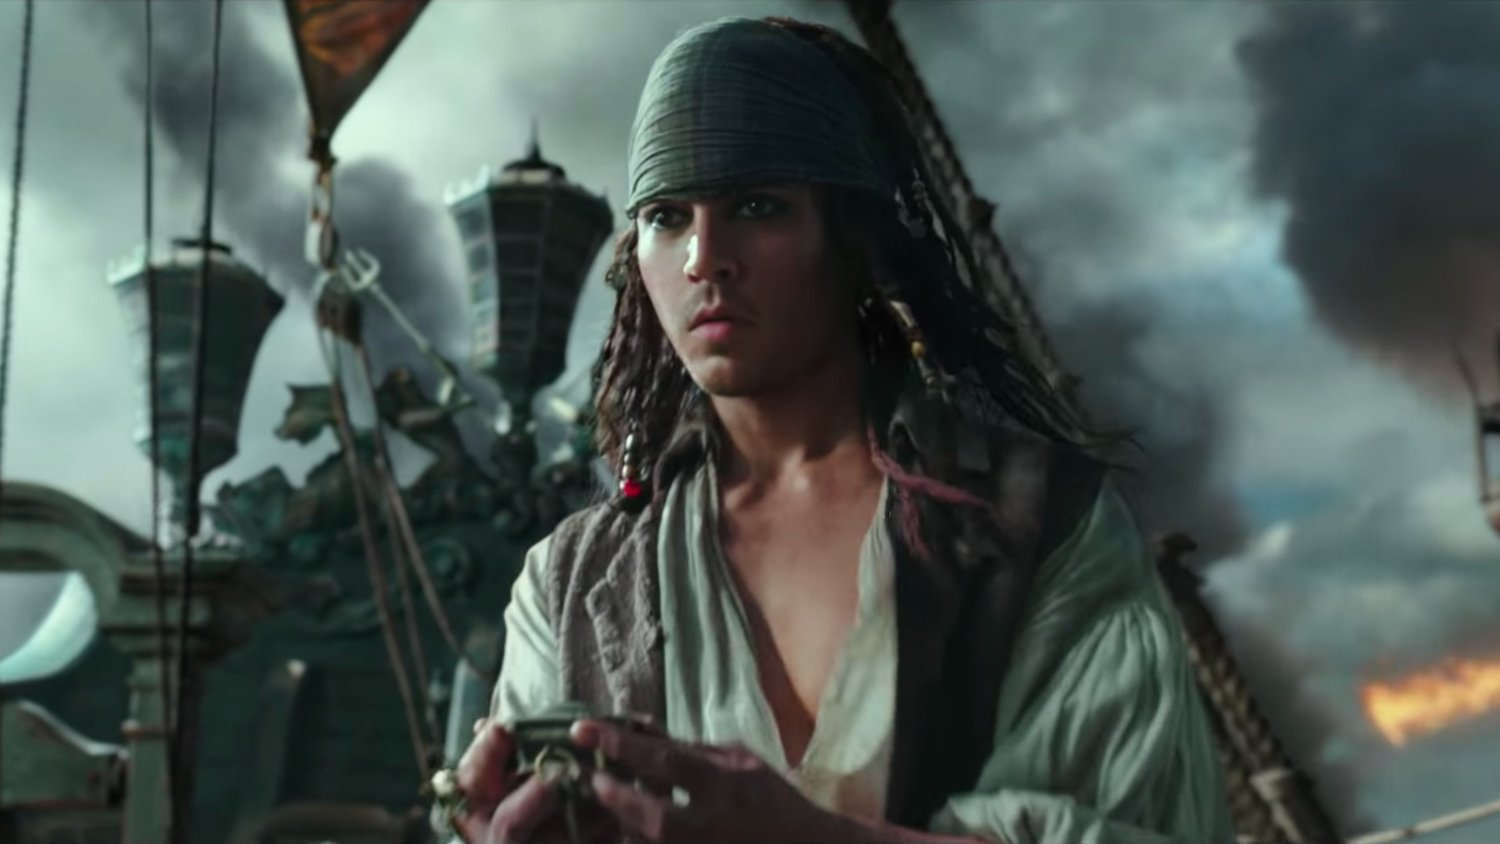 Adventure Filled New PIRATES OF THE CARIBBEAN 5 Trailer Features a Young Jack Sparrow